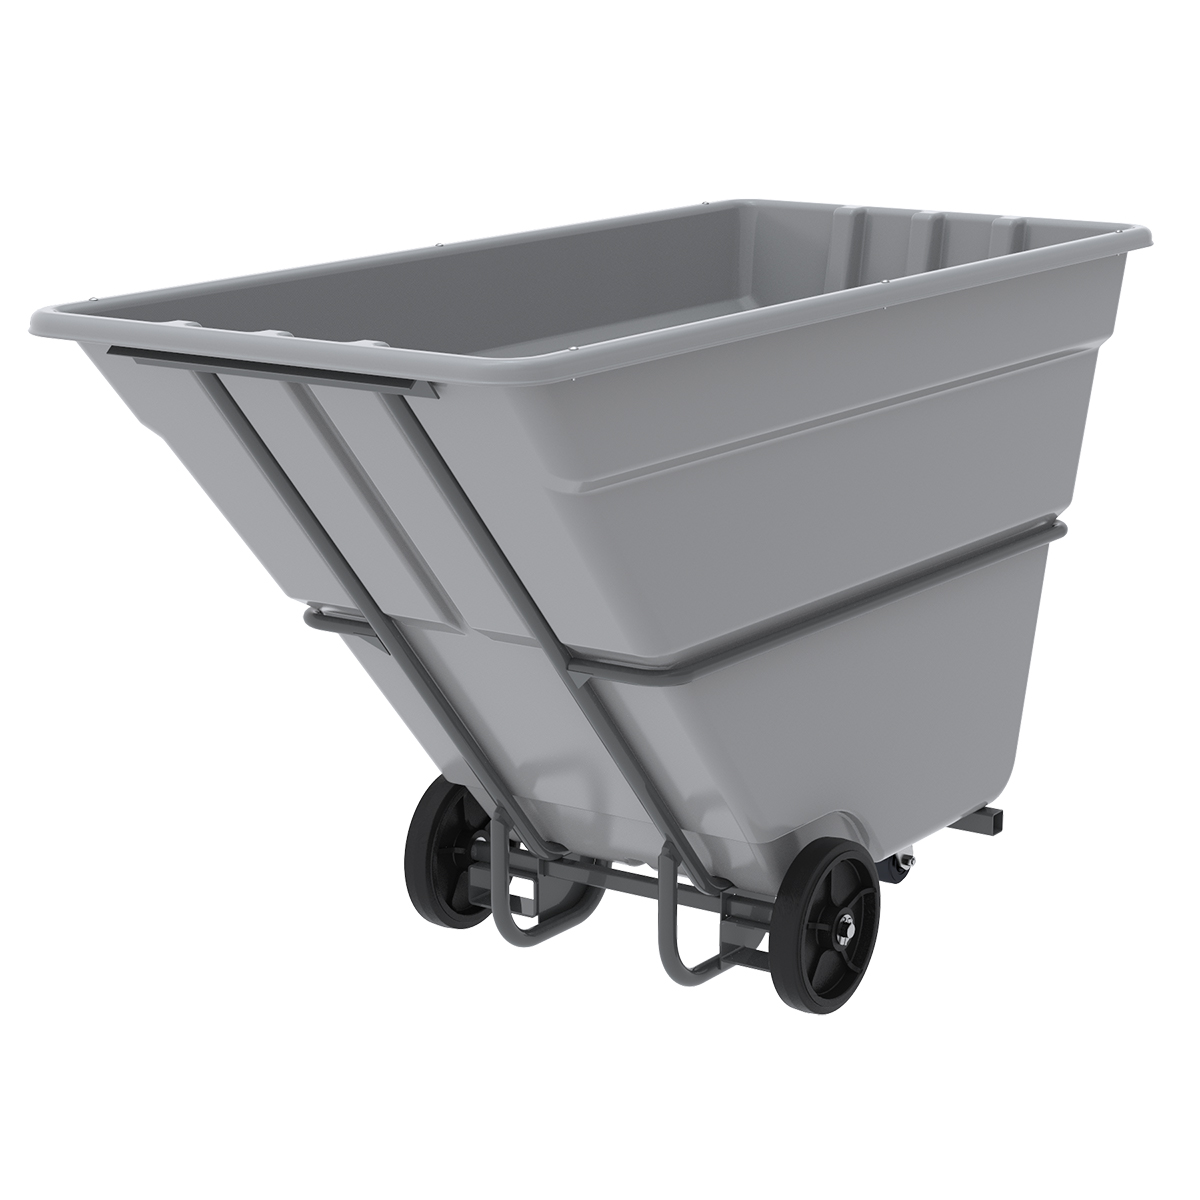 Akro-Tilt Truck w/ Fork Channels Heavy-Duty 300 Gal, 39 x 85 x 51, Gray (77710FGREY).  This item sold in carton quantities of 1.